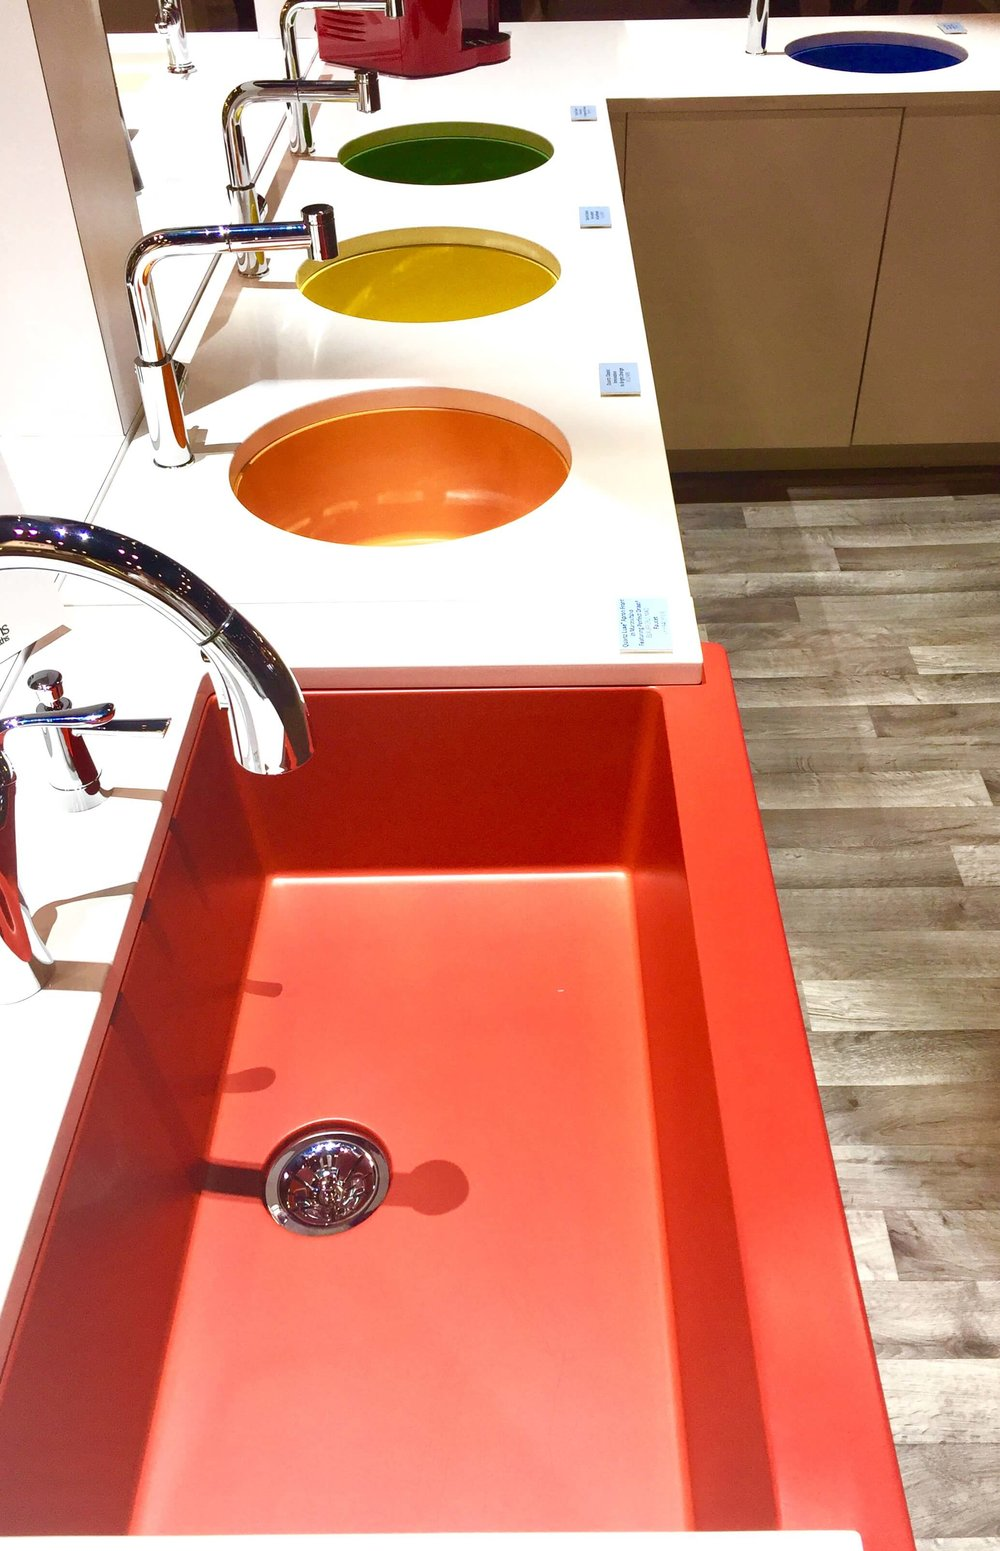 colored bathroom sinks kitchen and bath trends at kbis 2017 sinks and faucets 12375